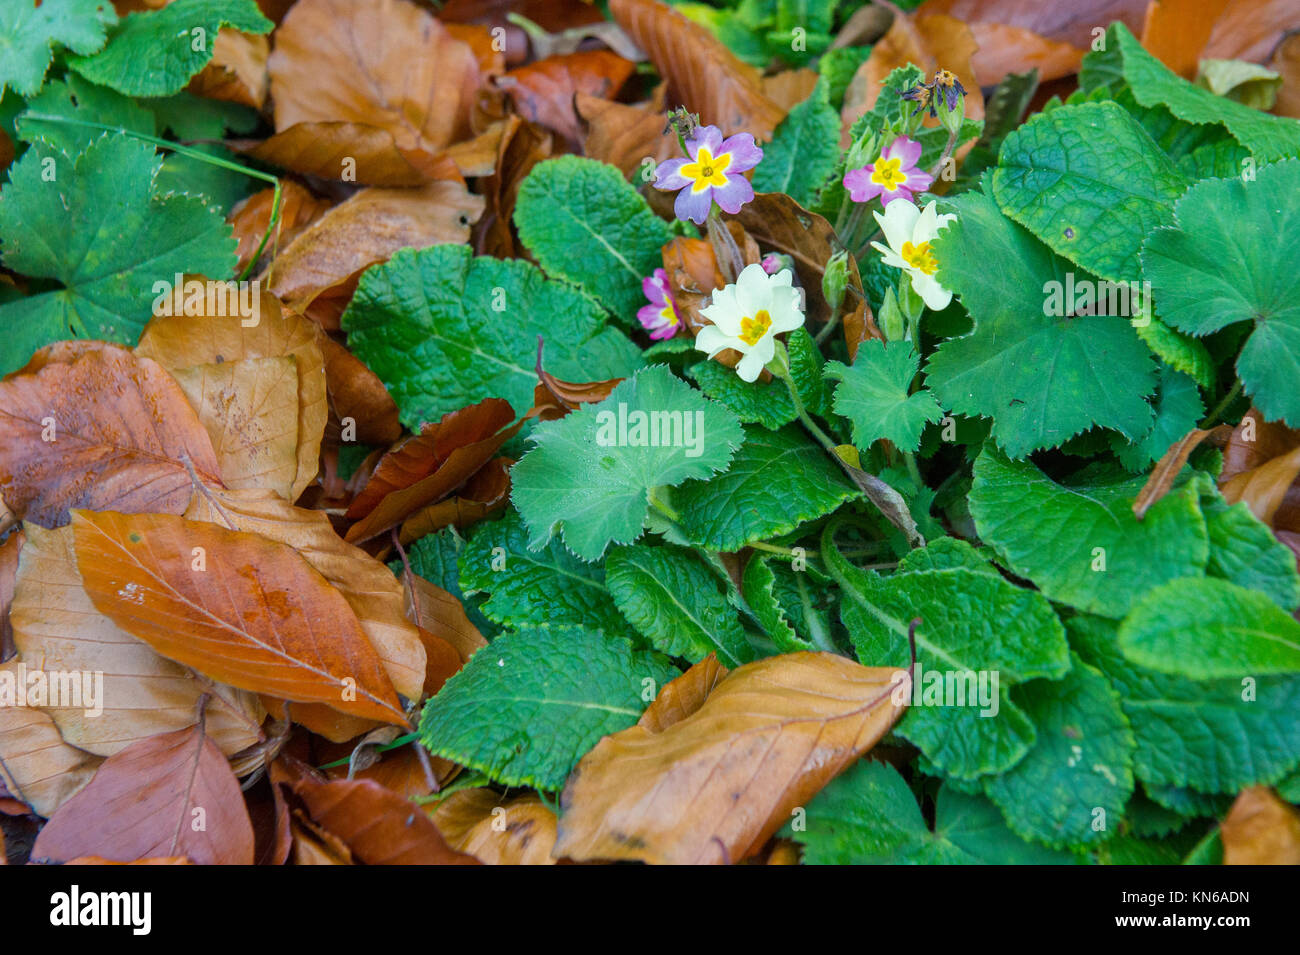 A Primrose flower amongst fallen autumn leaves - Stock Image